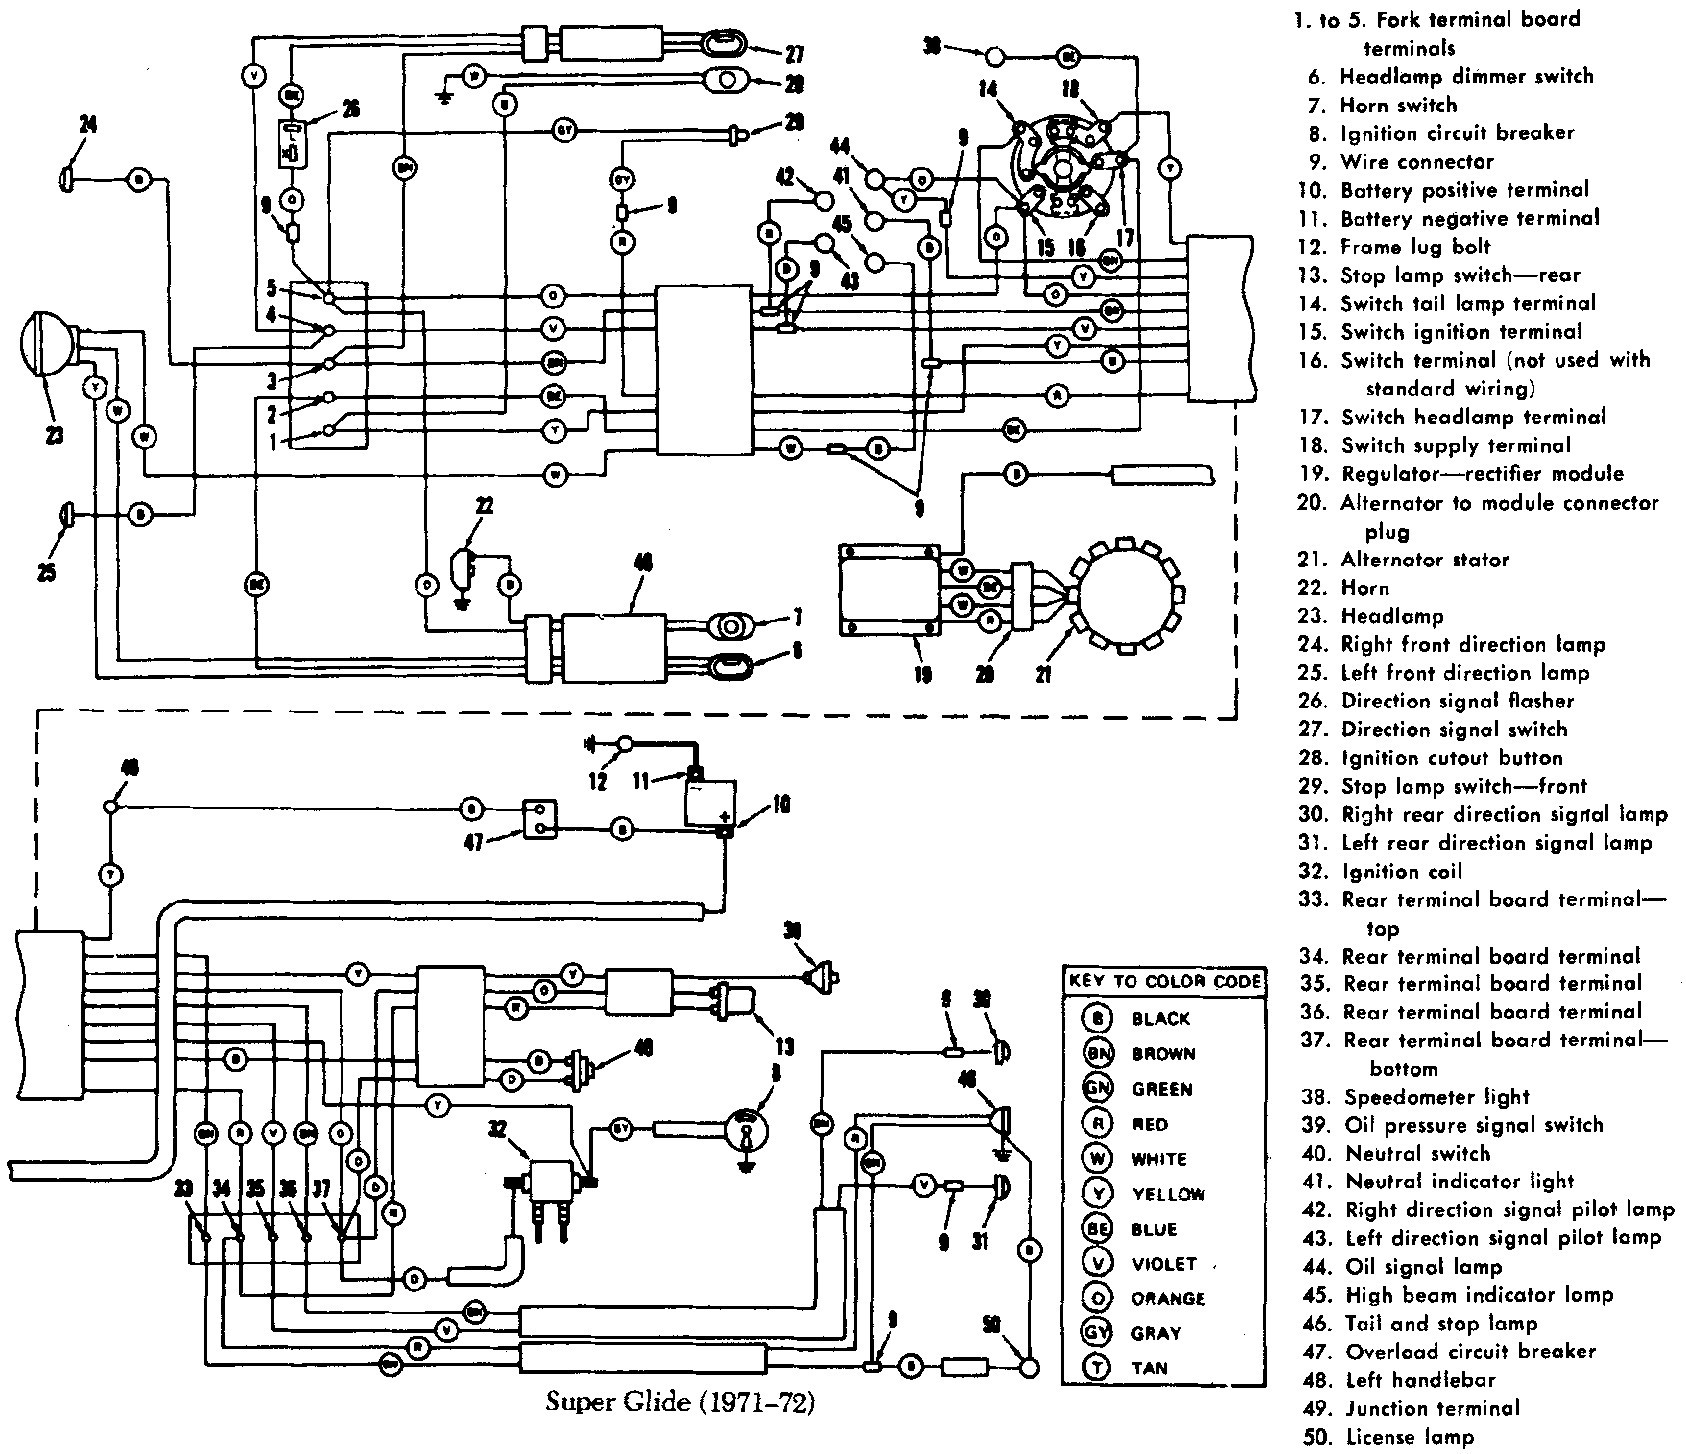 harley davidson headlight wiring diagram best of wiring diagram image rh mainetreasurechest com Harley 2015 Wiring Diagrams Online Harley Wiring Diagram Simplified